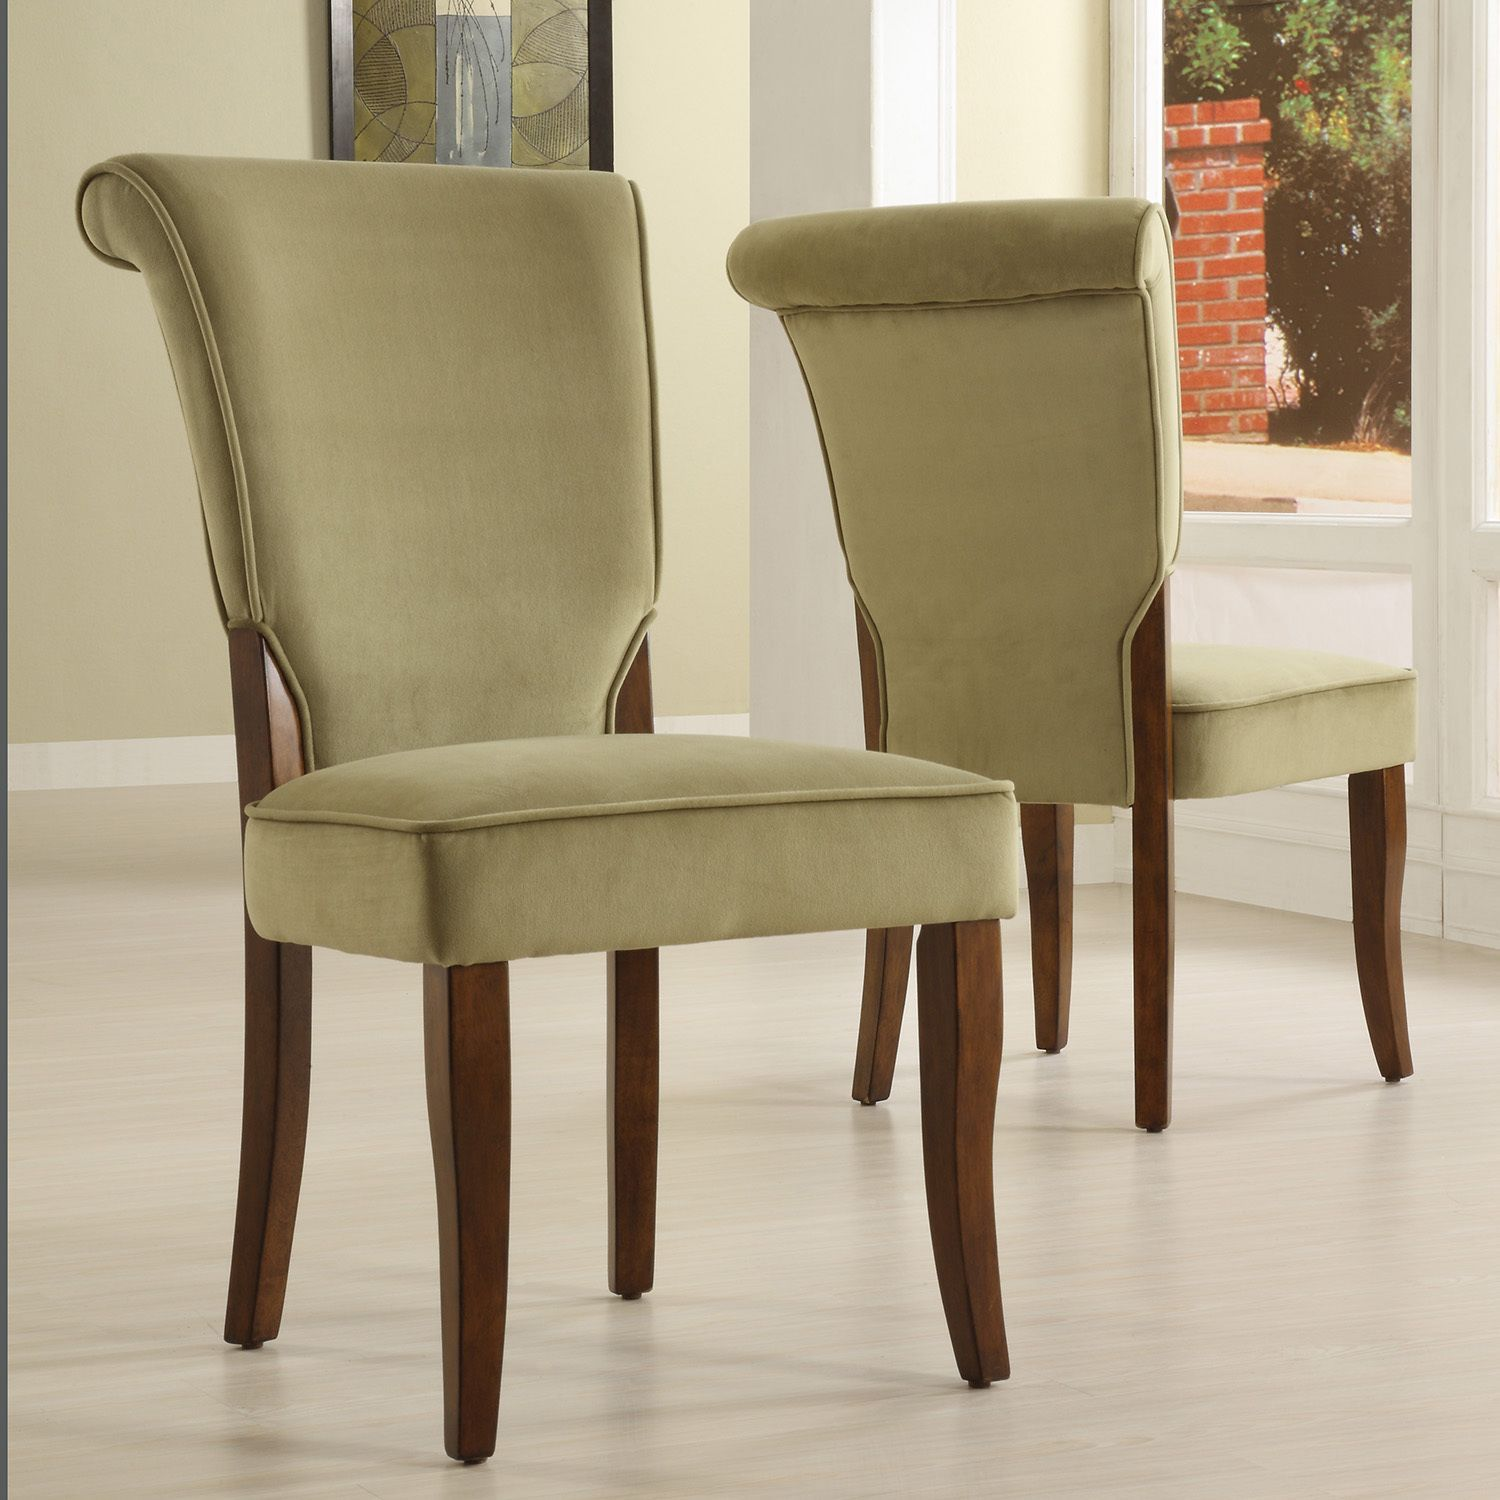 Andorra Sage Velvet Upholstered Dining Chair by Inspire Q (Set of 2), Green